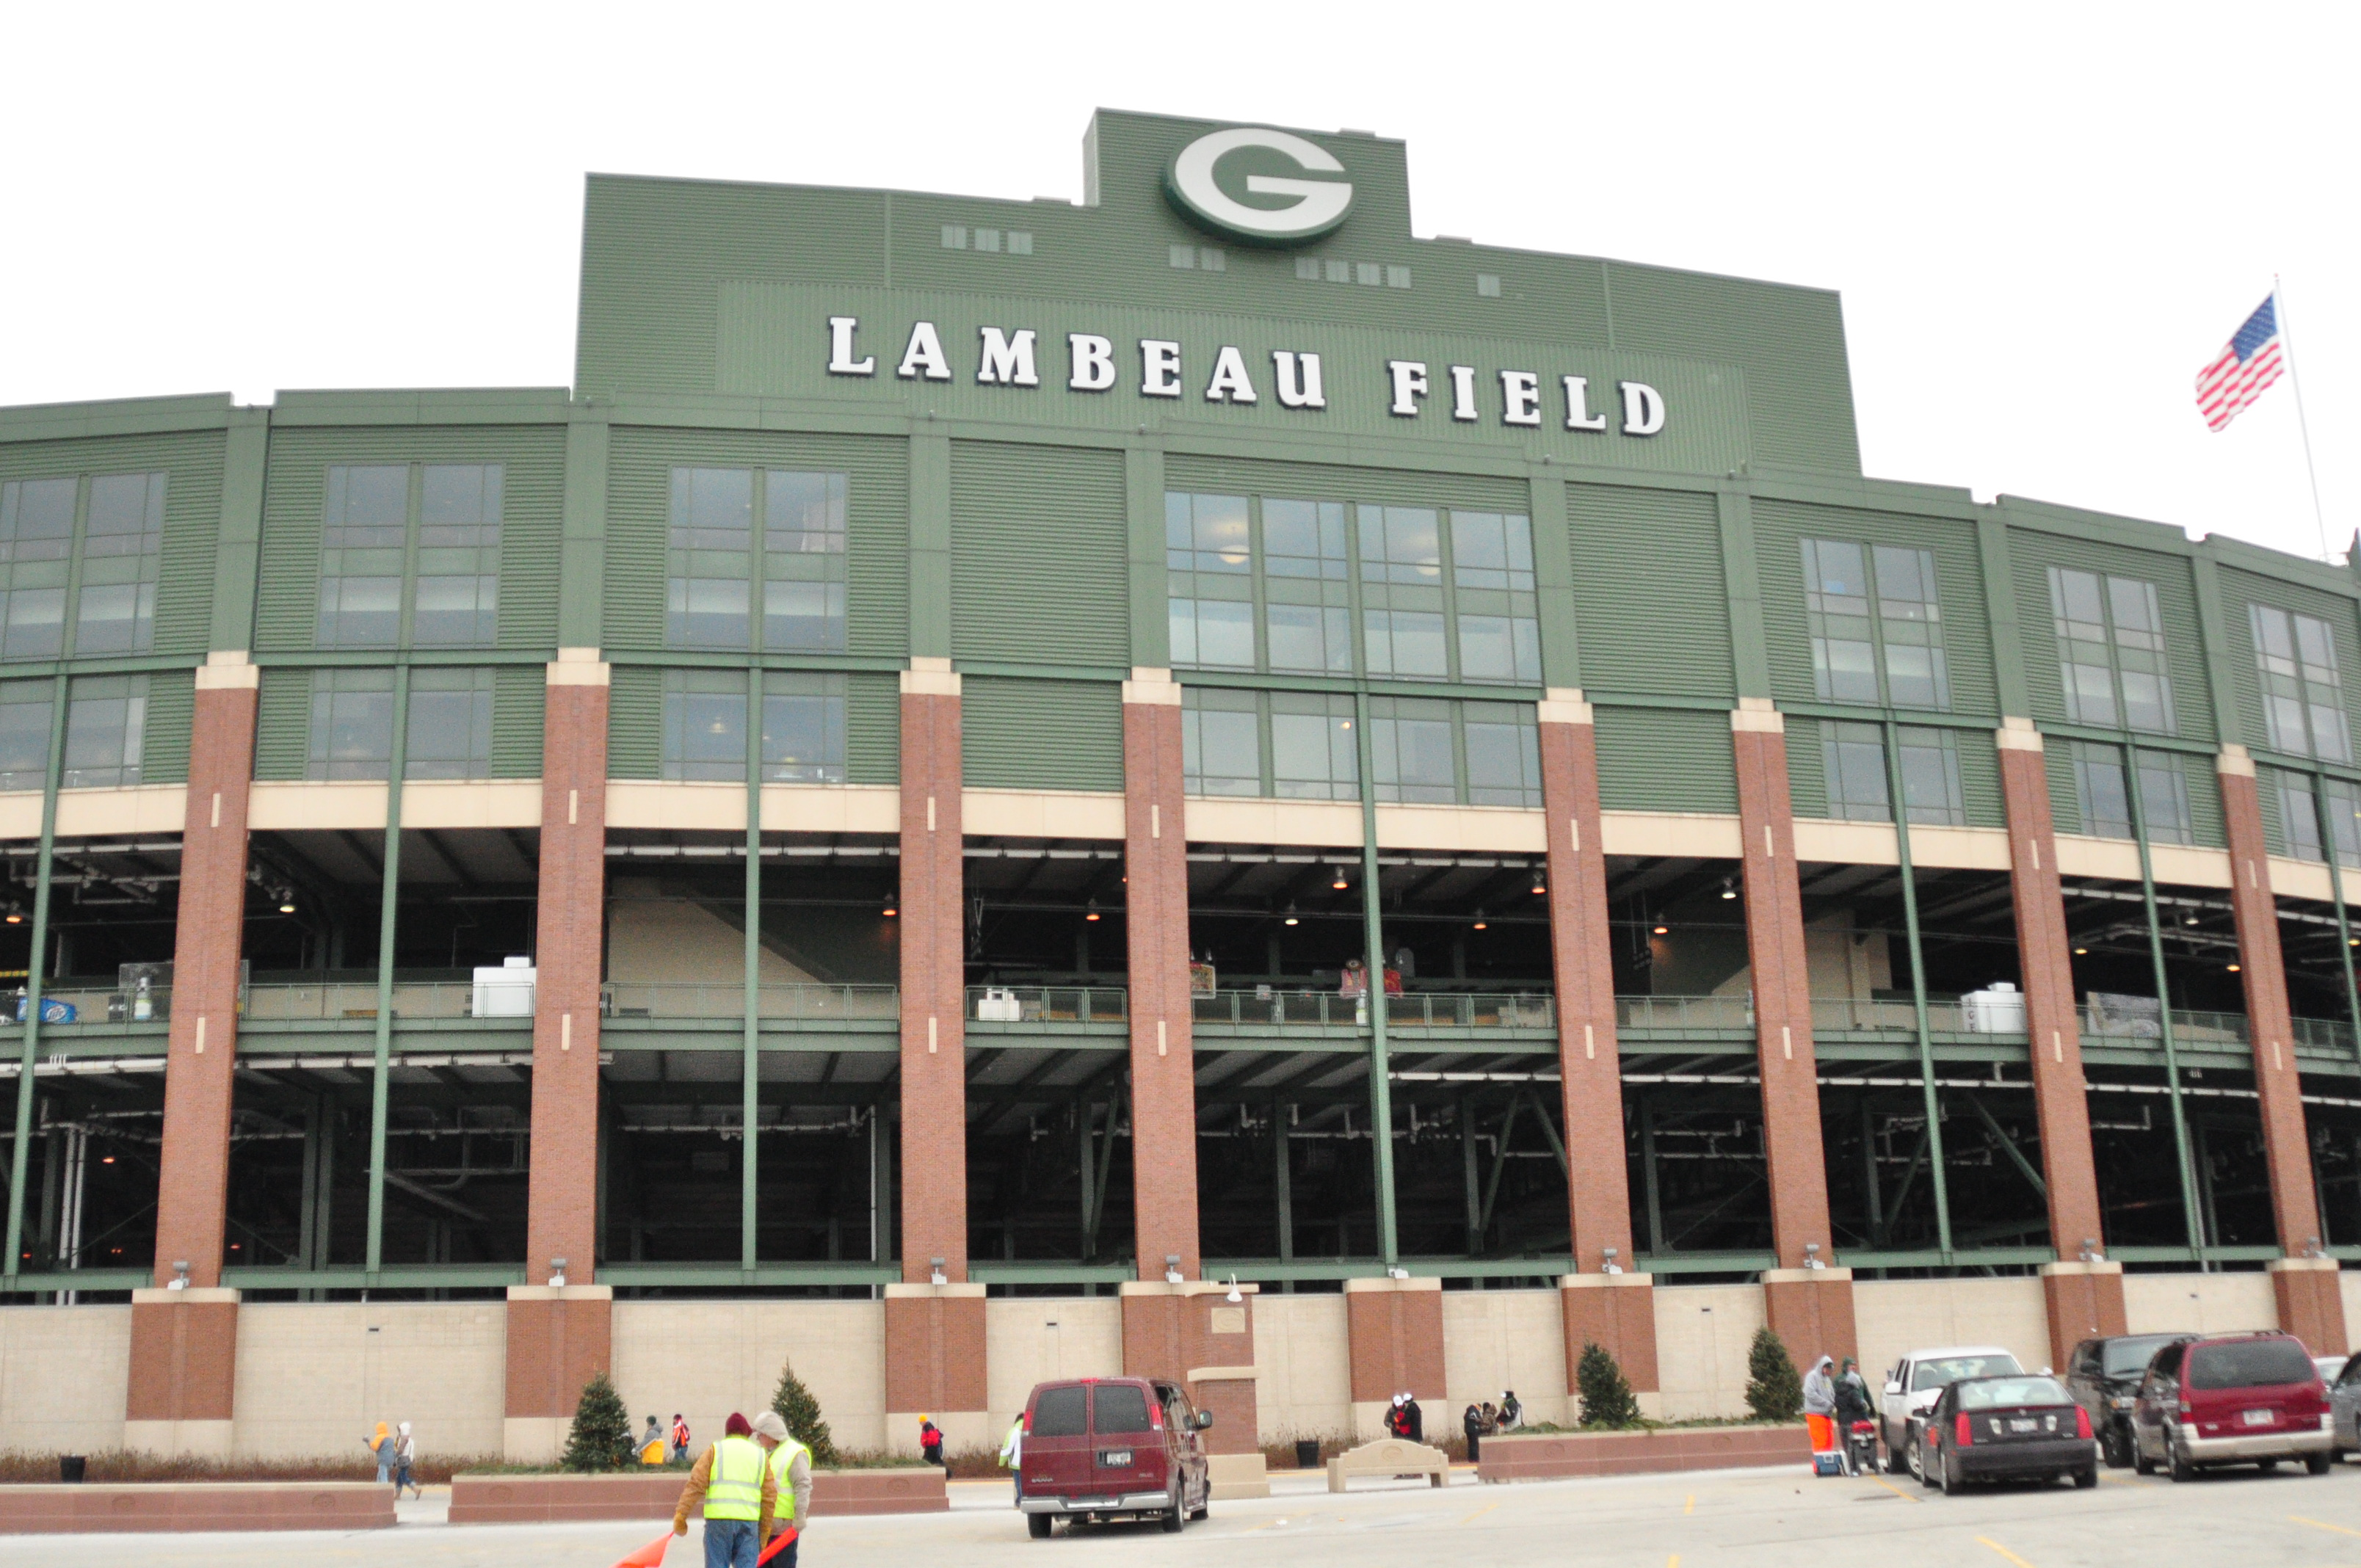 lambeau field safety and security to be addressed